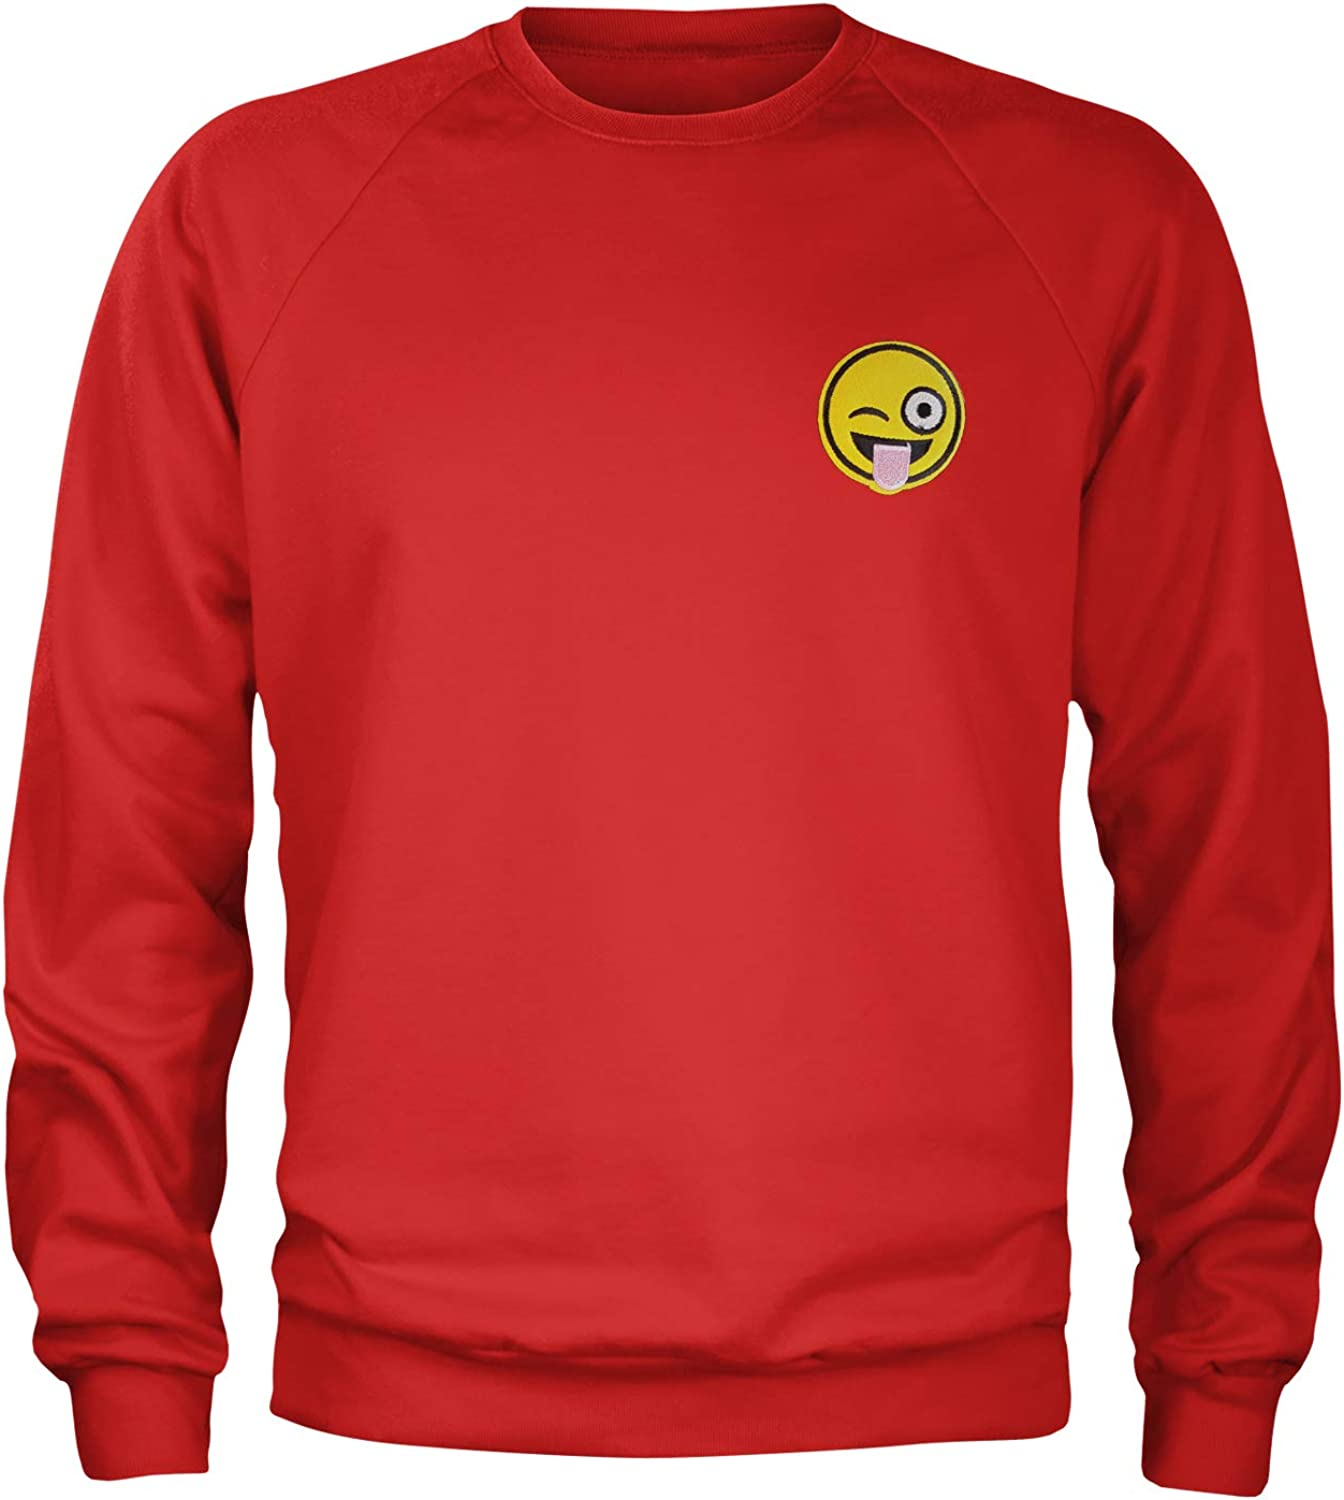 Expression Tees Embroidered Tongue Hanging Out Emoticon Patch Pocket Print Crewneck Sweatshirt